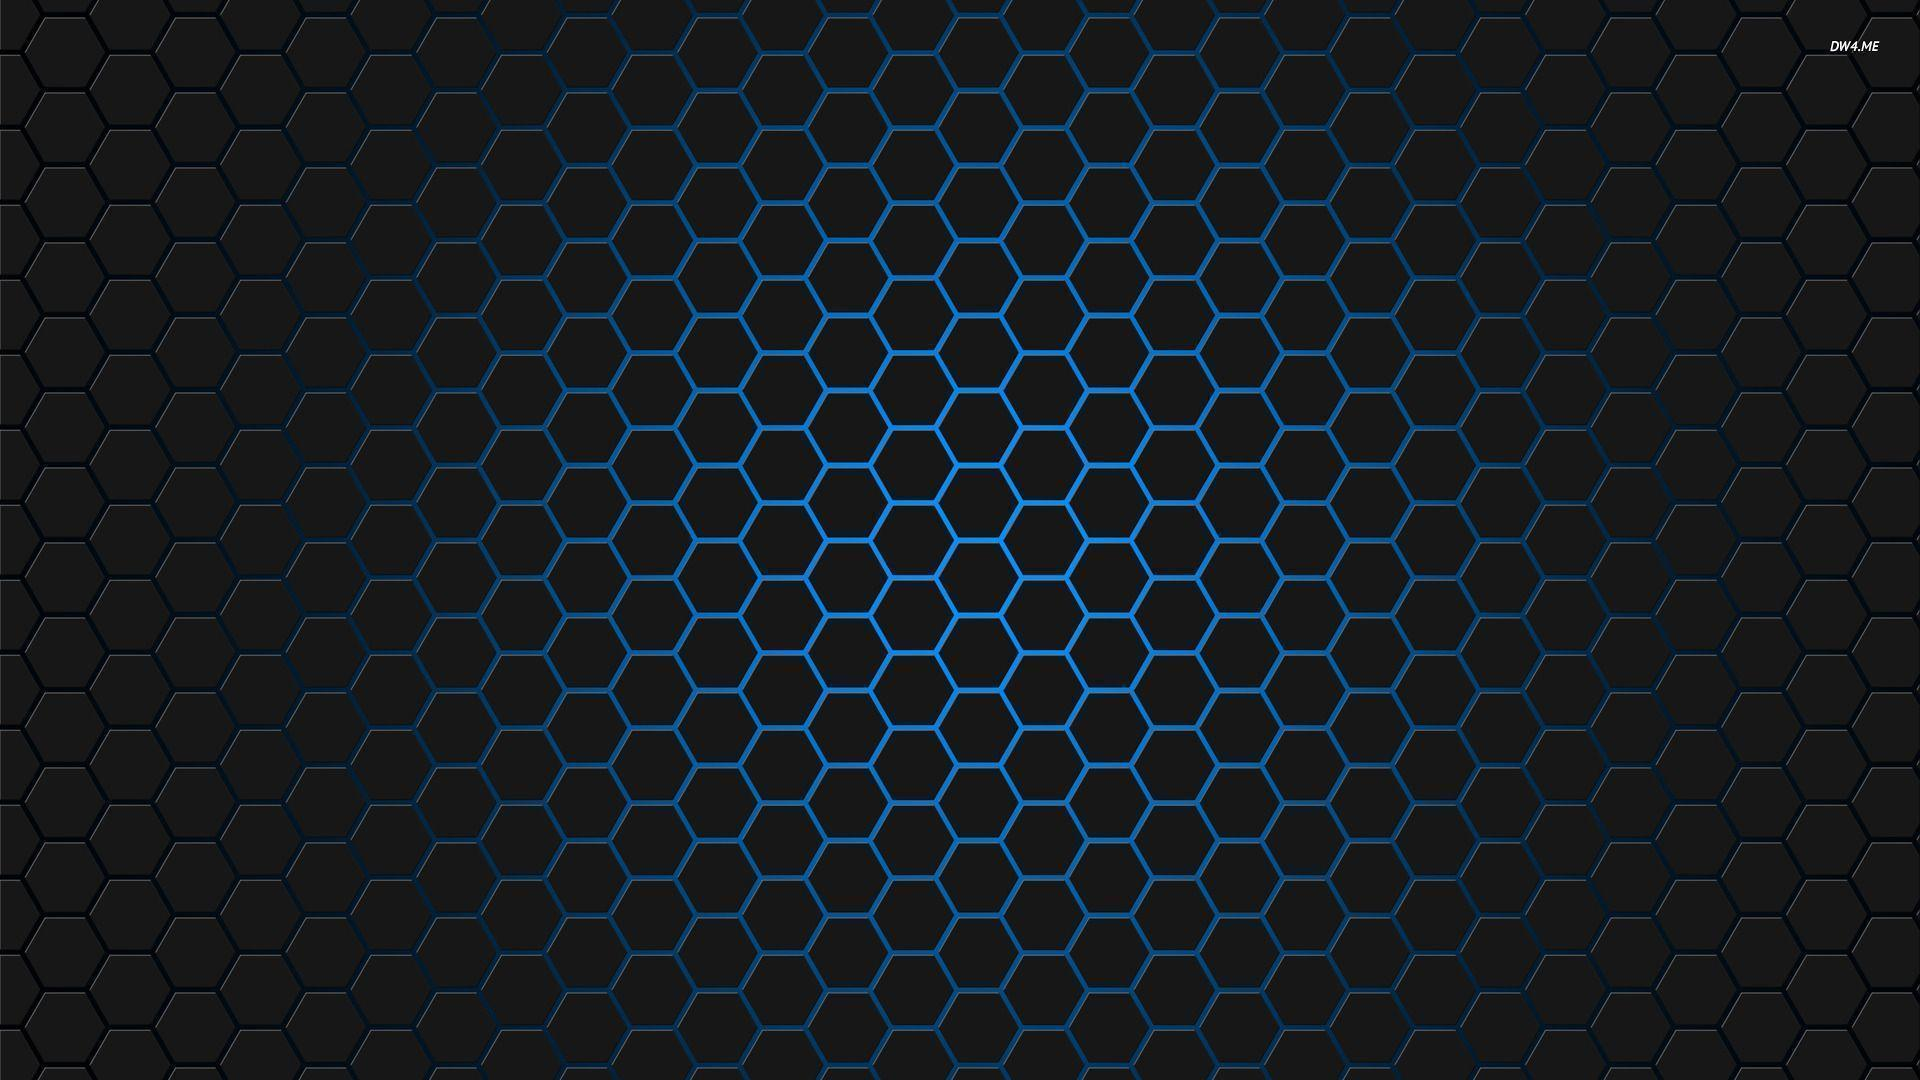 Hexagon Wallpapers, Awesome Hexagon Pictures and Wallpapers (32+ ...